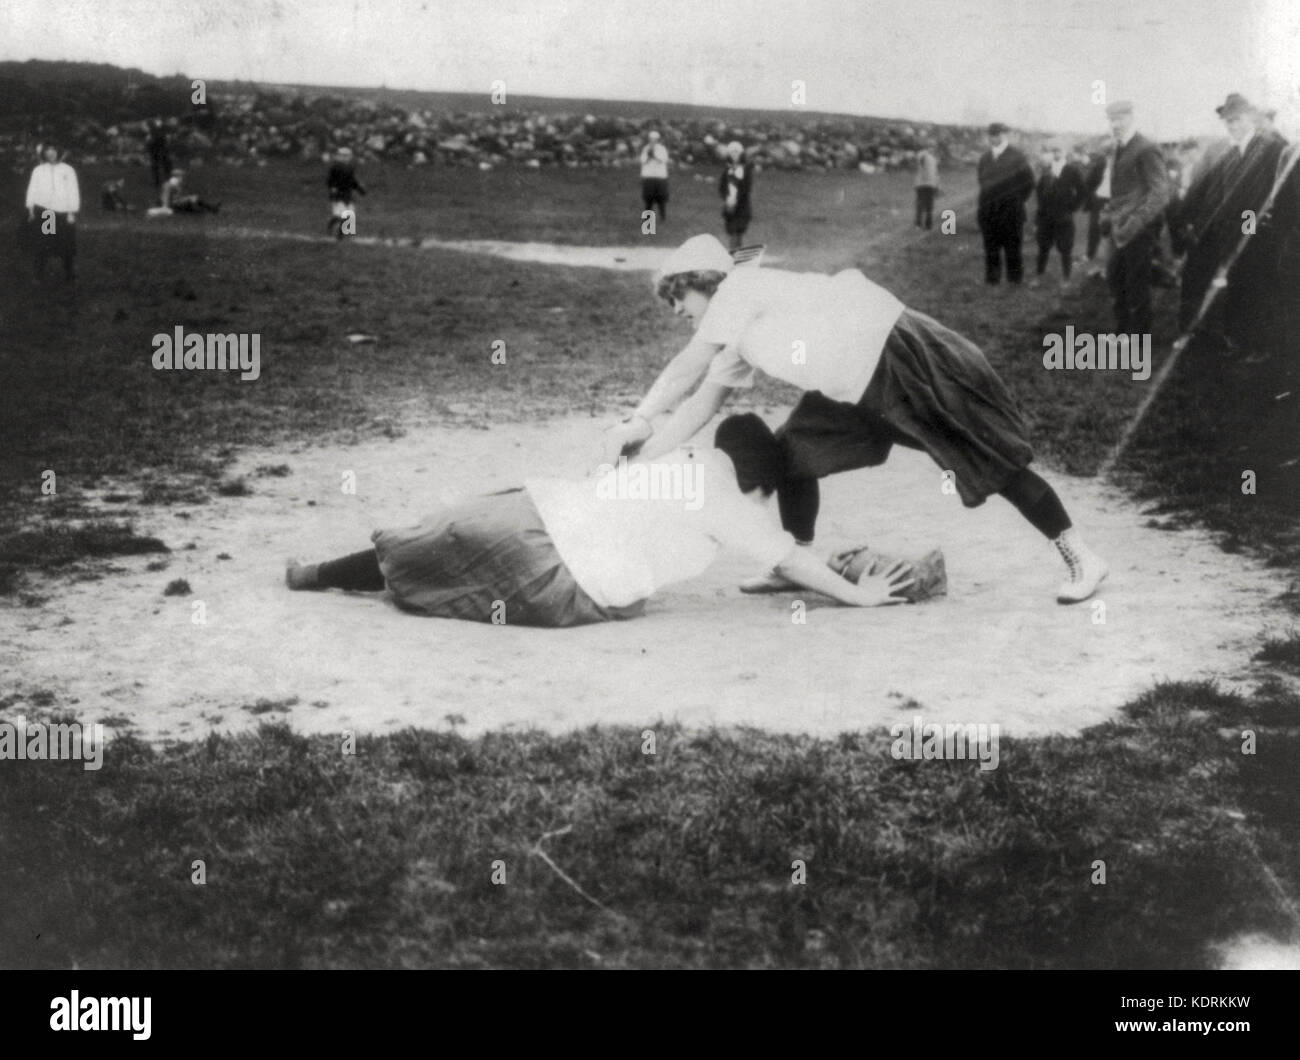 Baseball - New York Female 'Giants': Miss Schnall, catcher, and Miss Slachu with hands on home plate, July - Stock Image